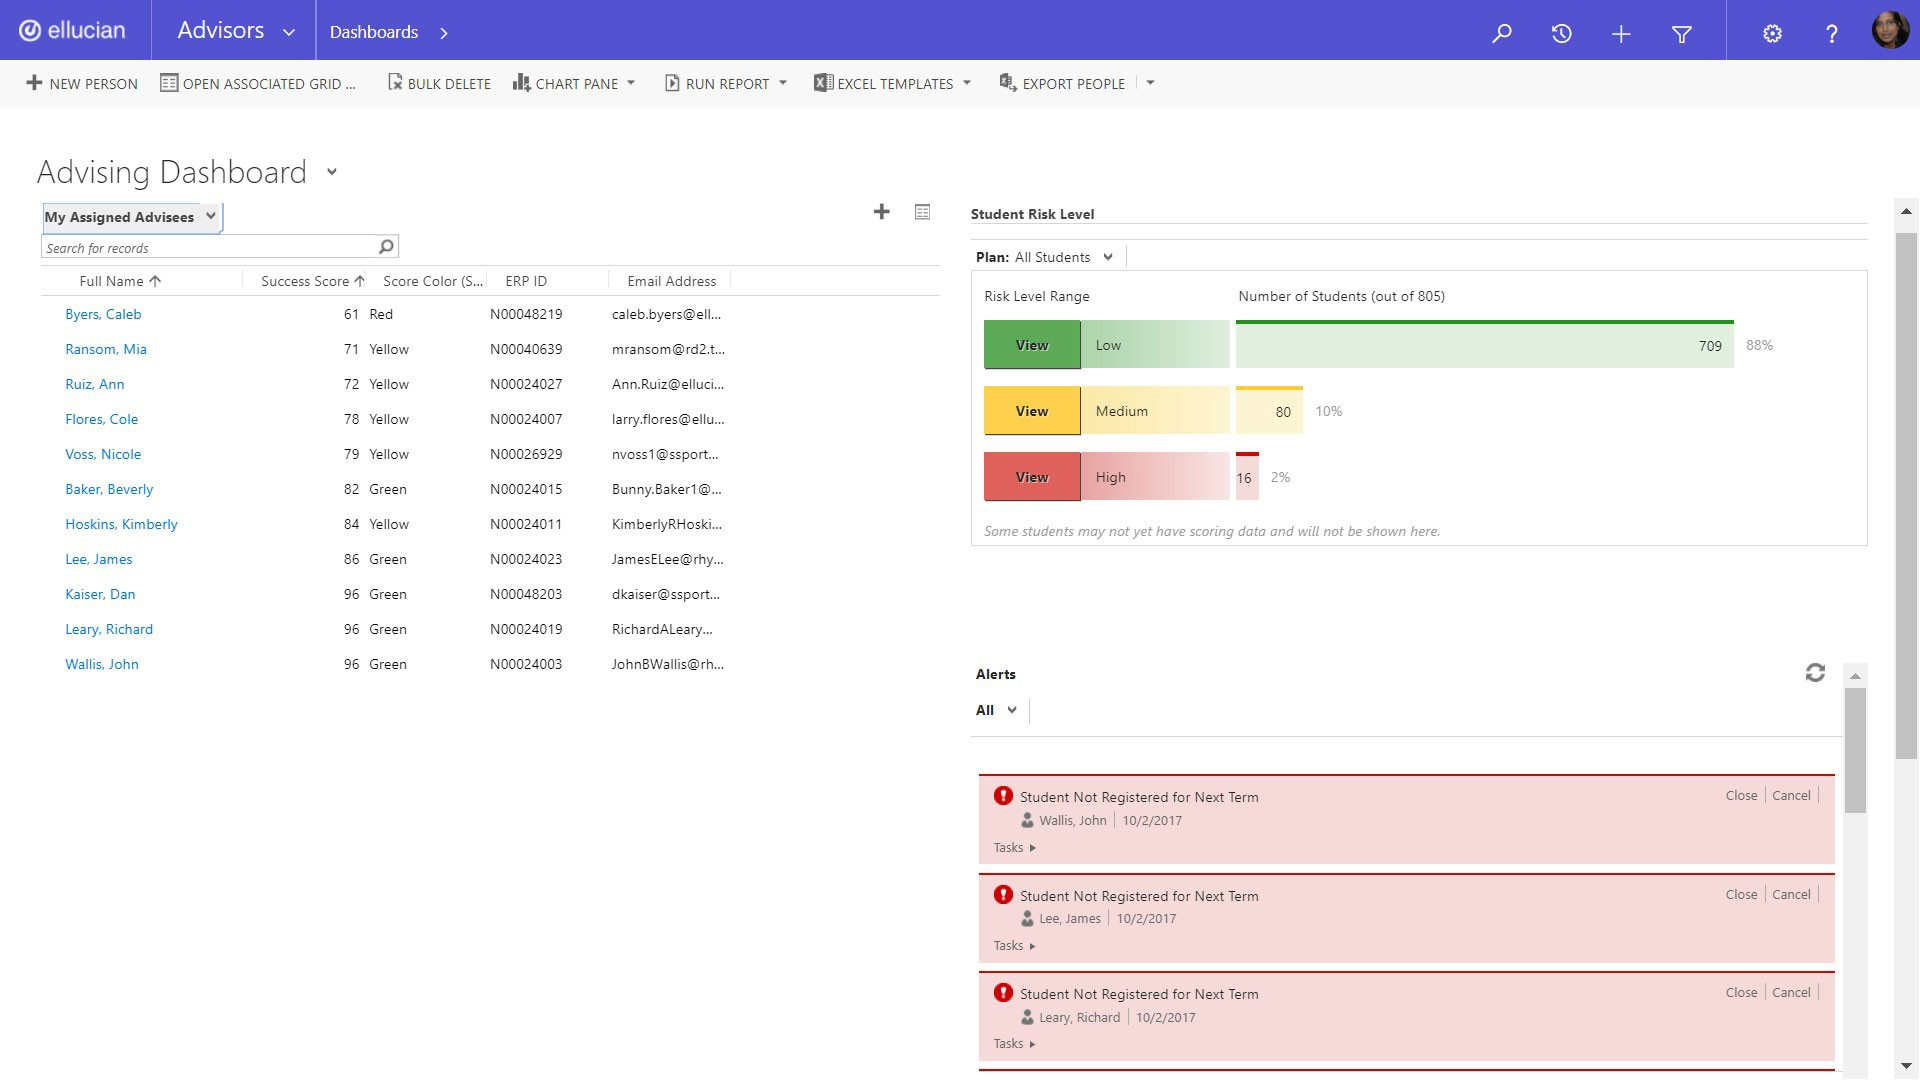 Advising dashboard